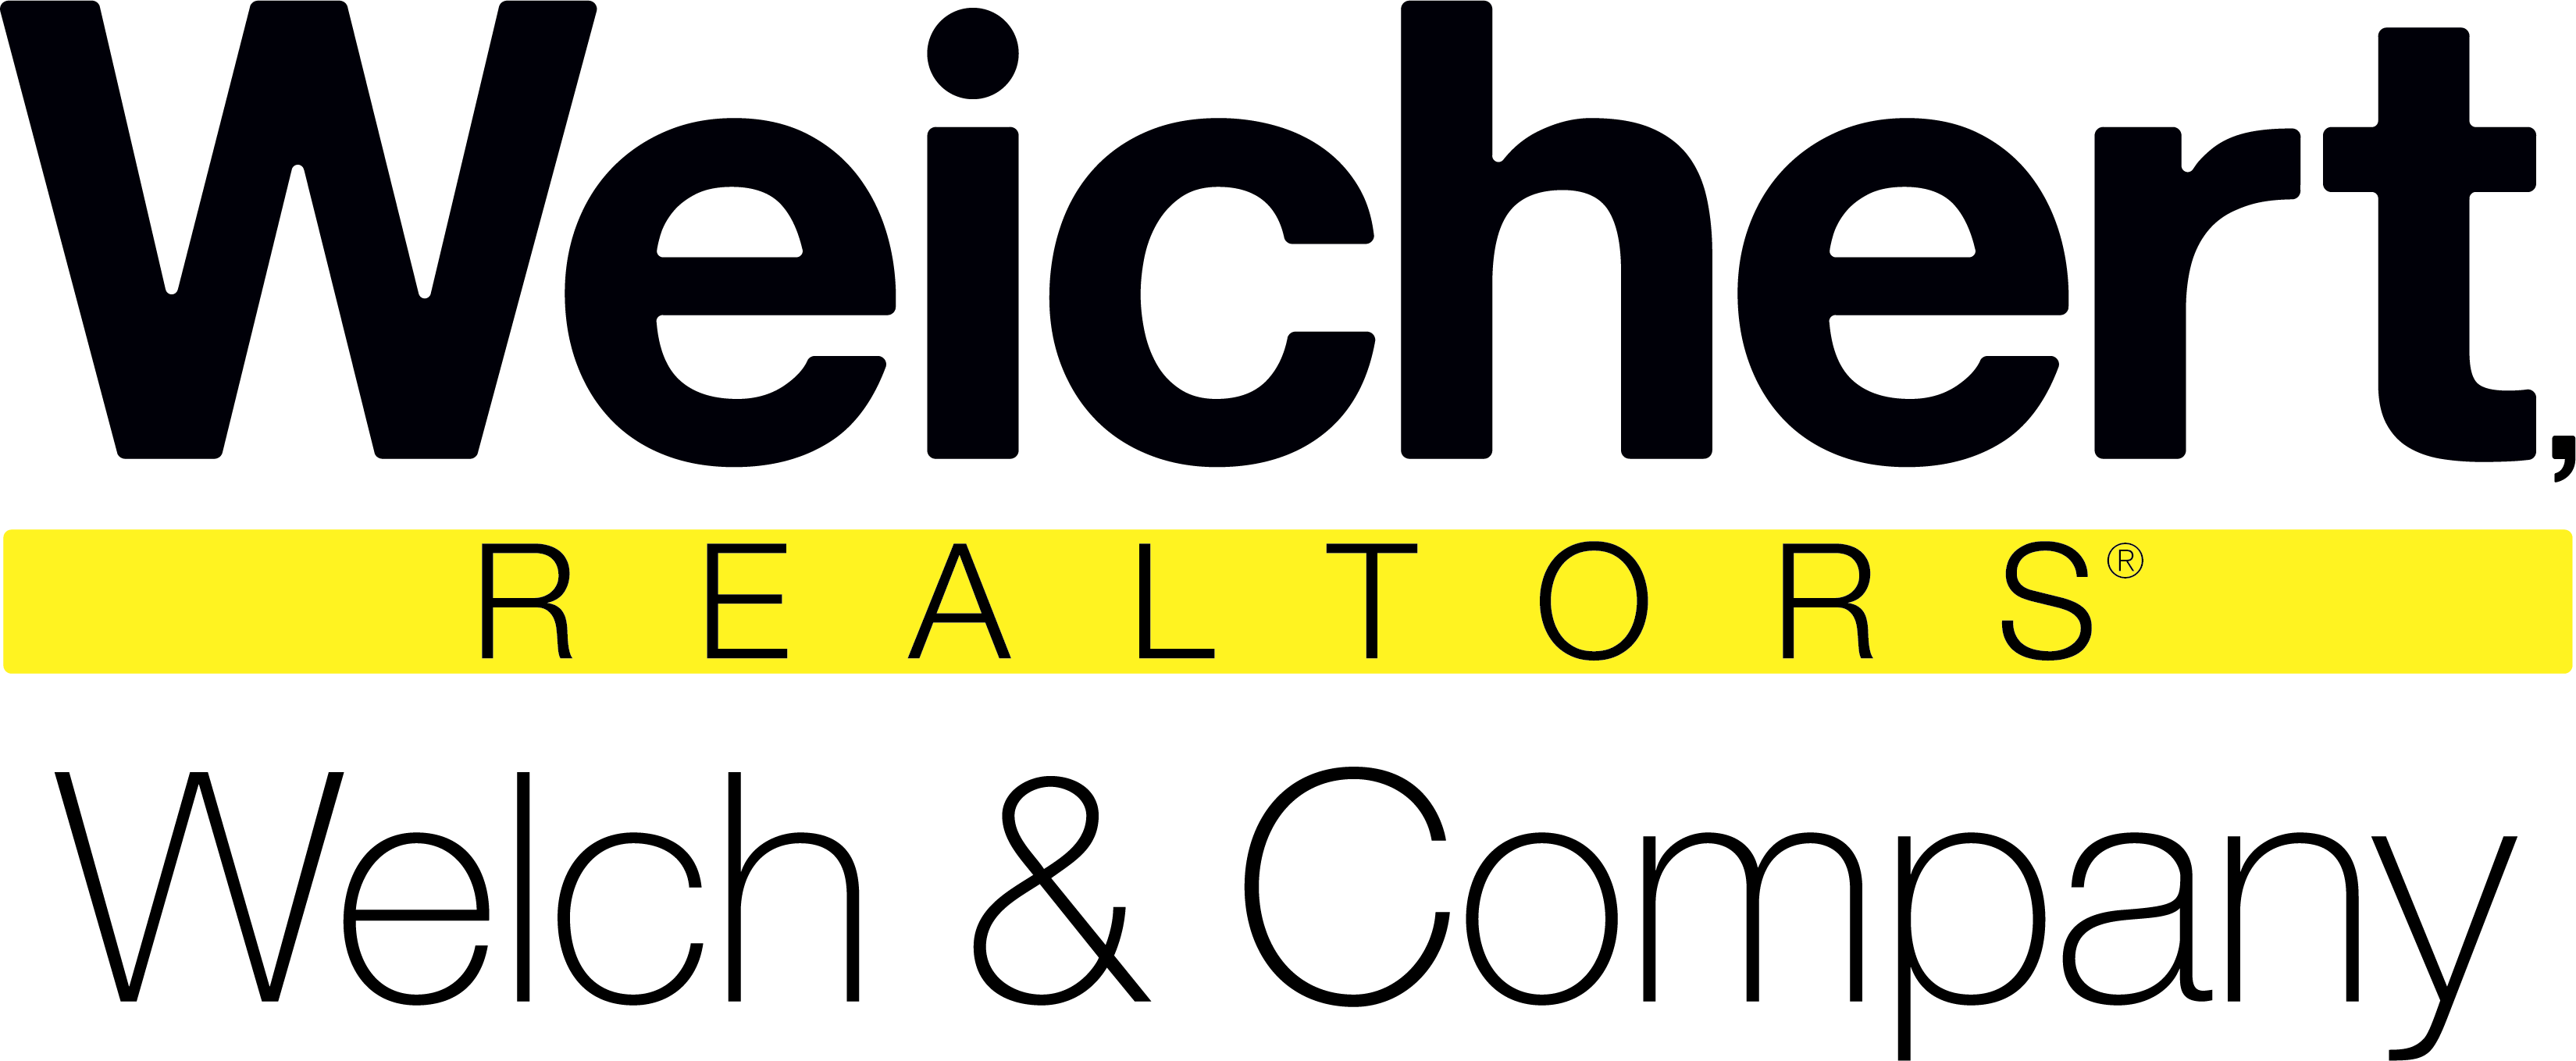 Weichert Realtors Welch and Company